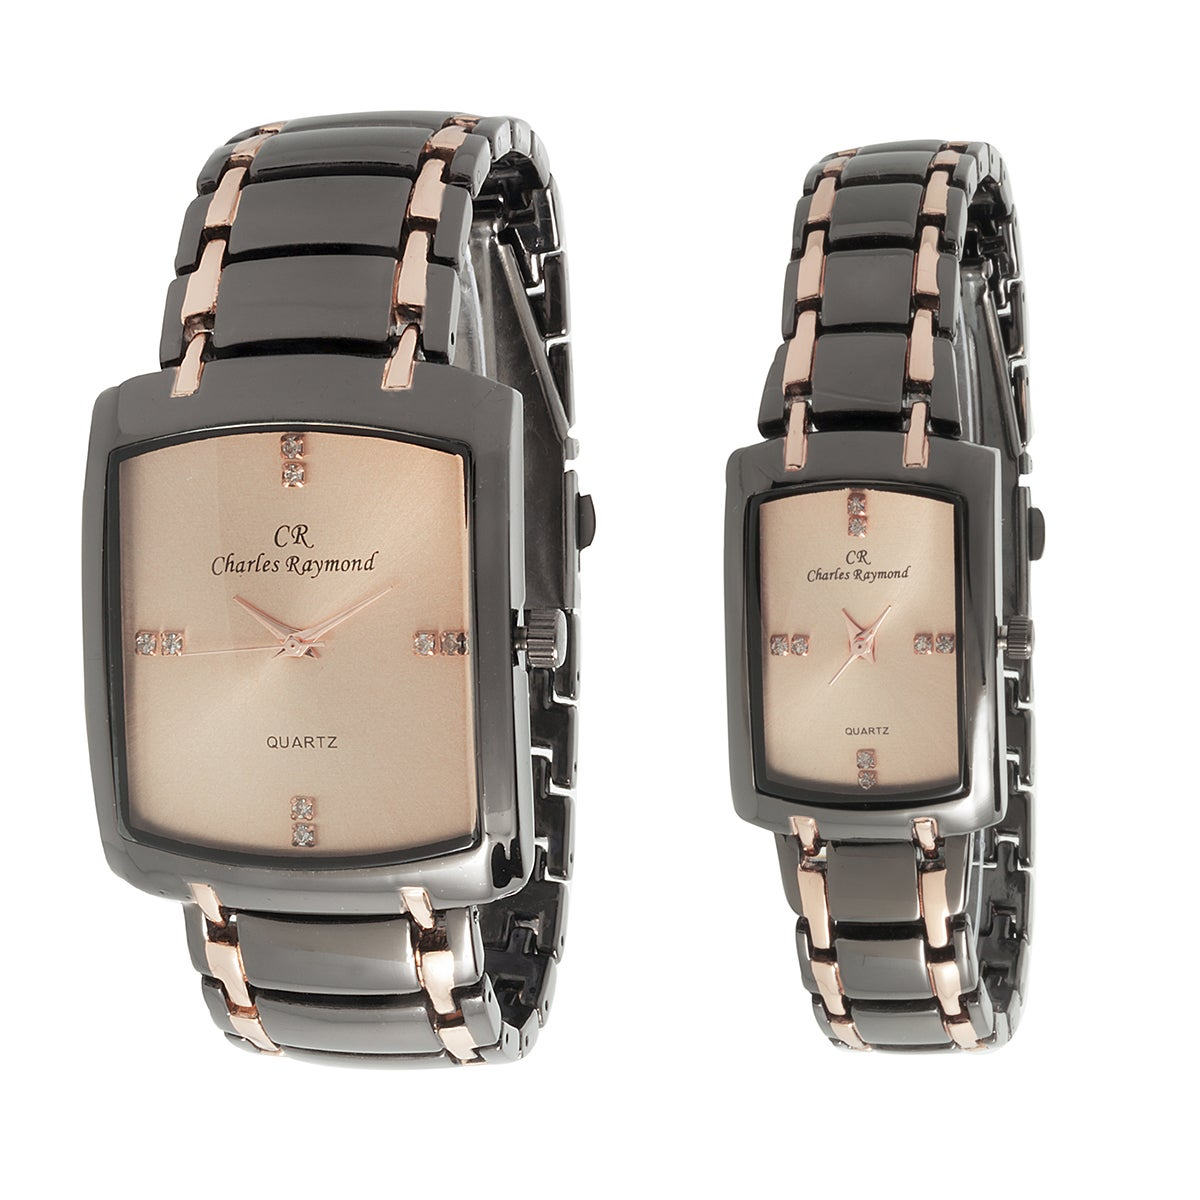 Royal Chares Raymond His and Hers 1776 RoseGold Tone Watc...